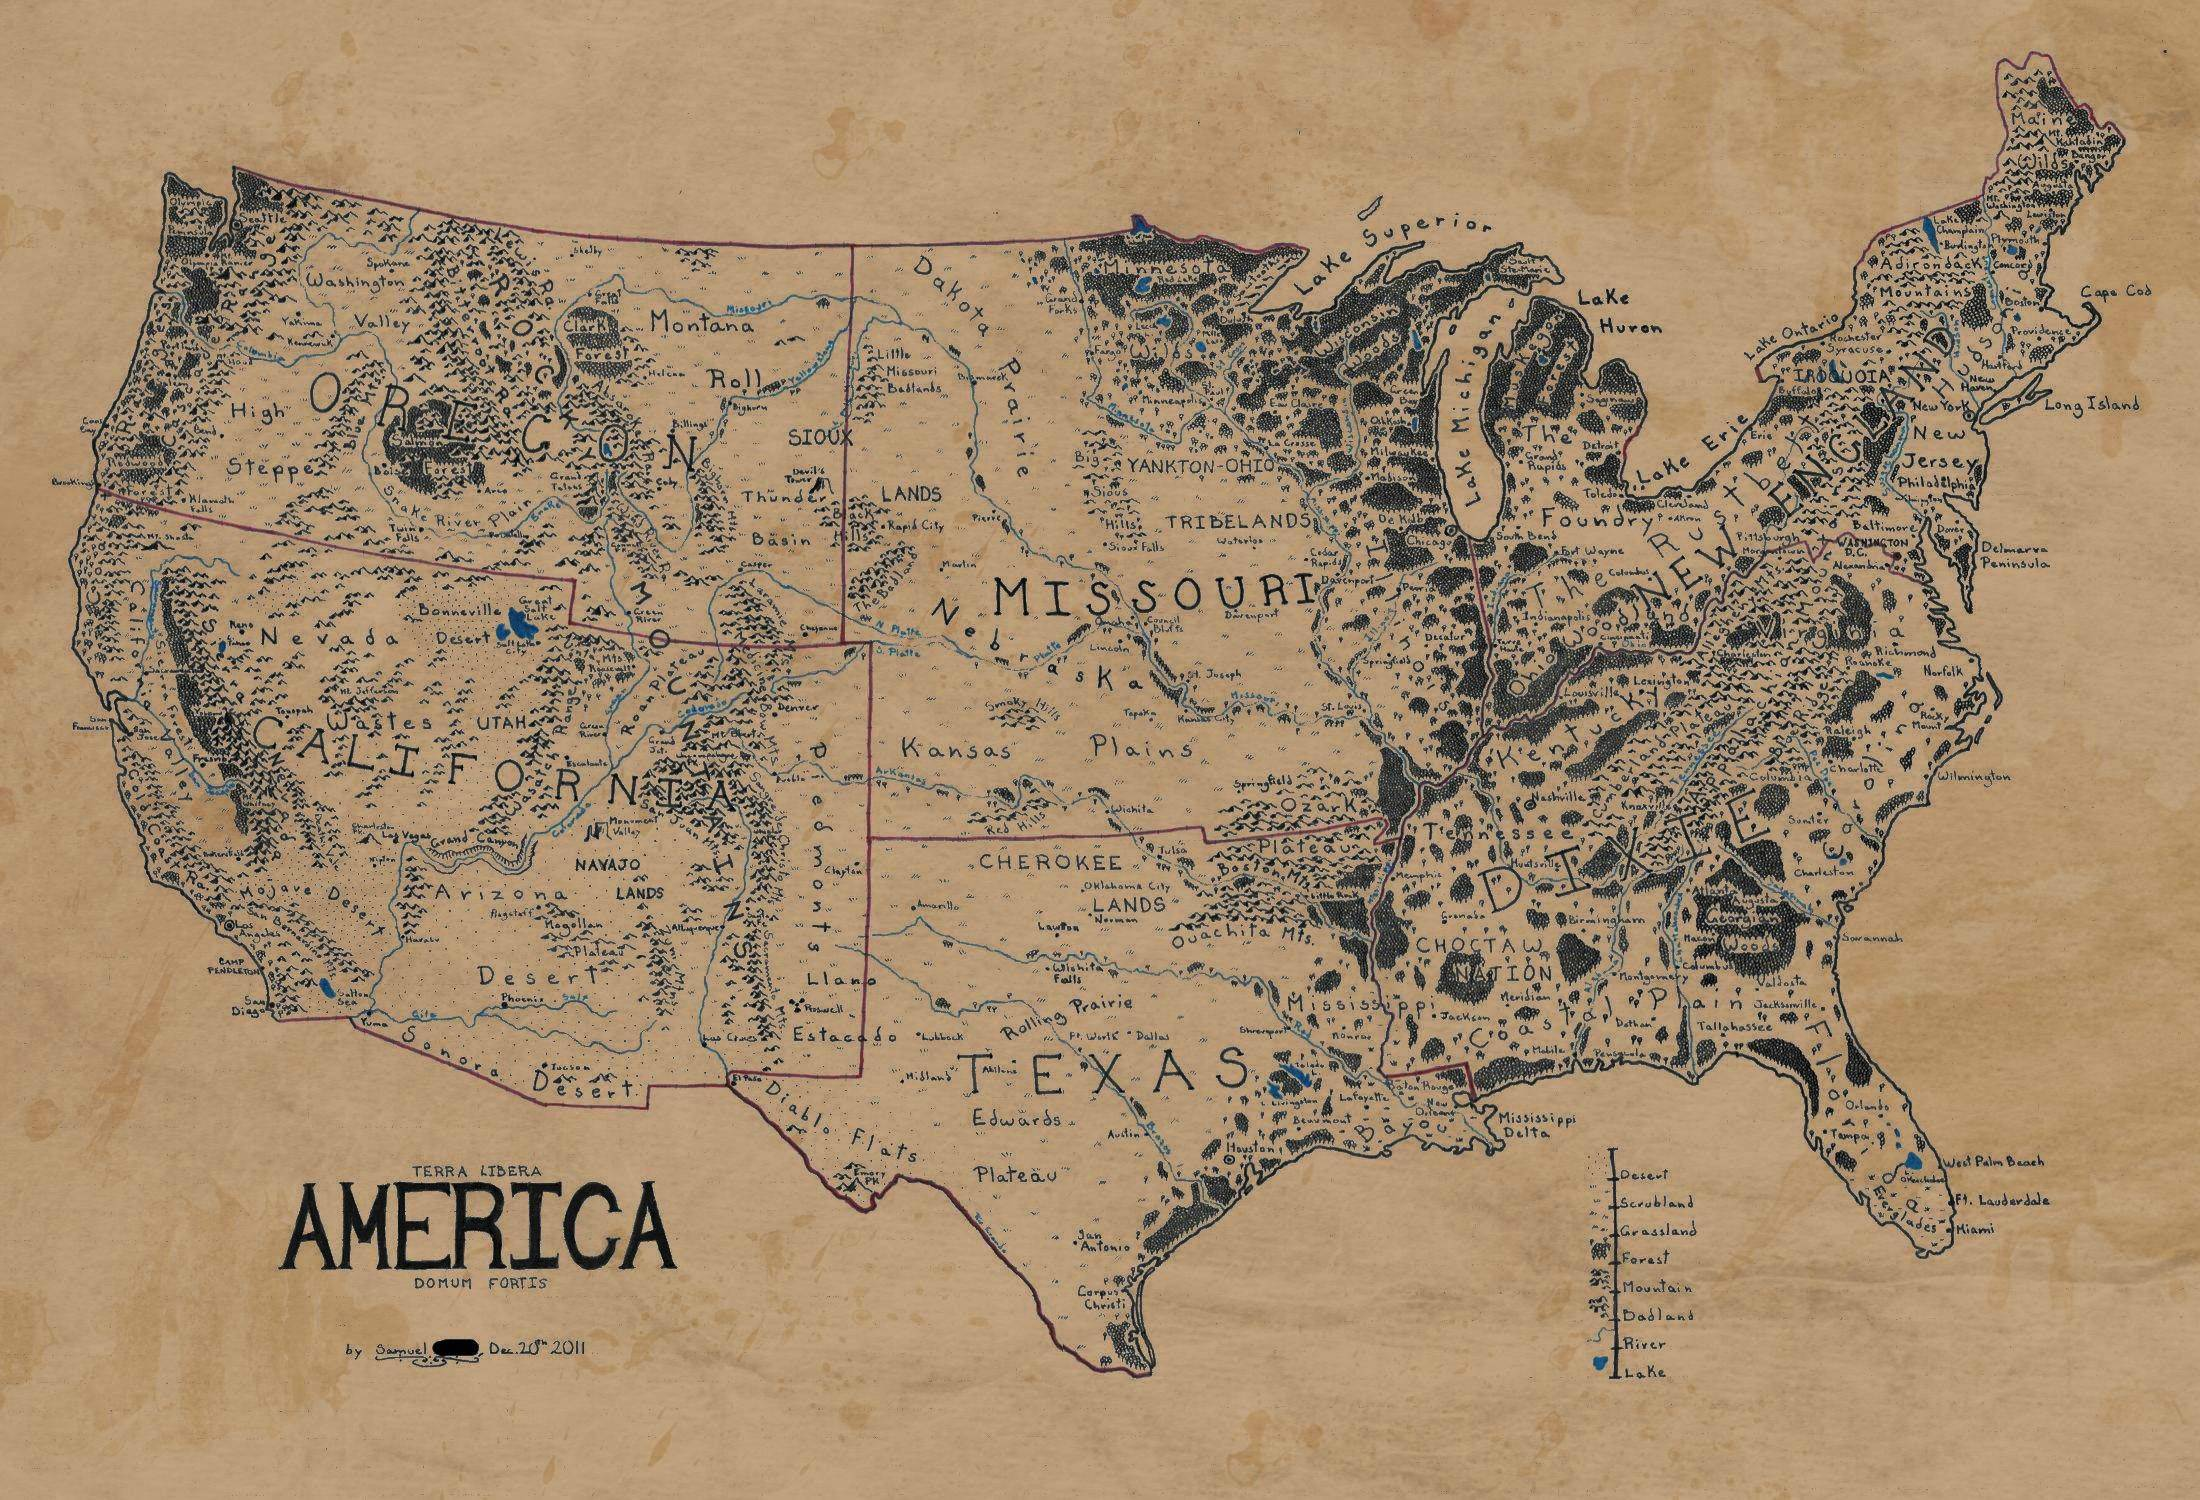 A Map Of The United States Drawn In The Style Of Lord Of The Rings - Map of us drawn by australian